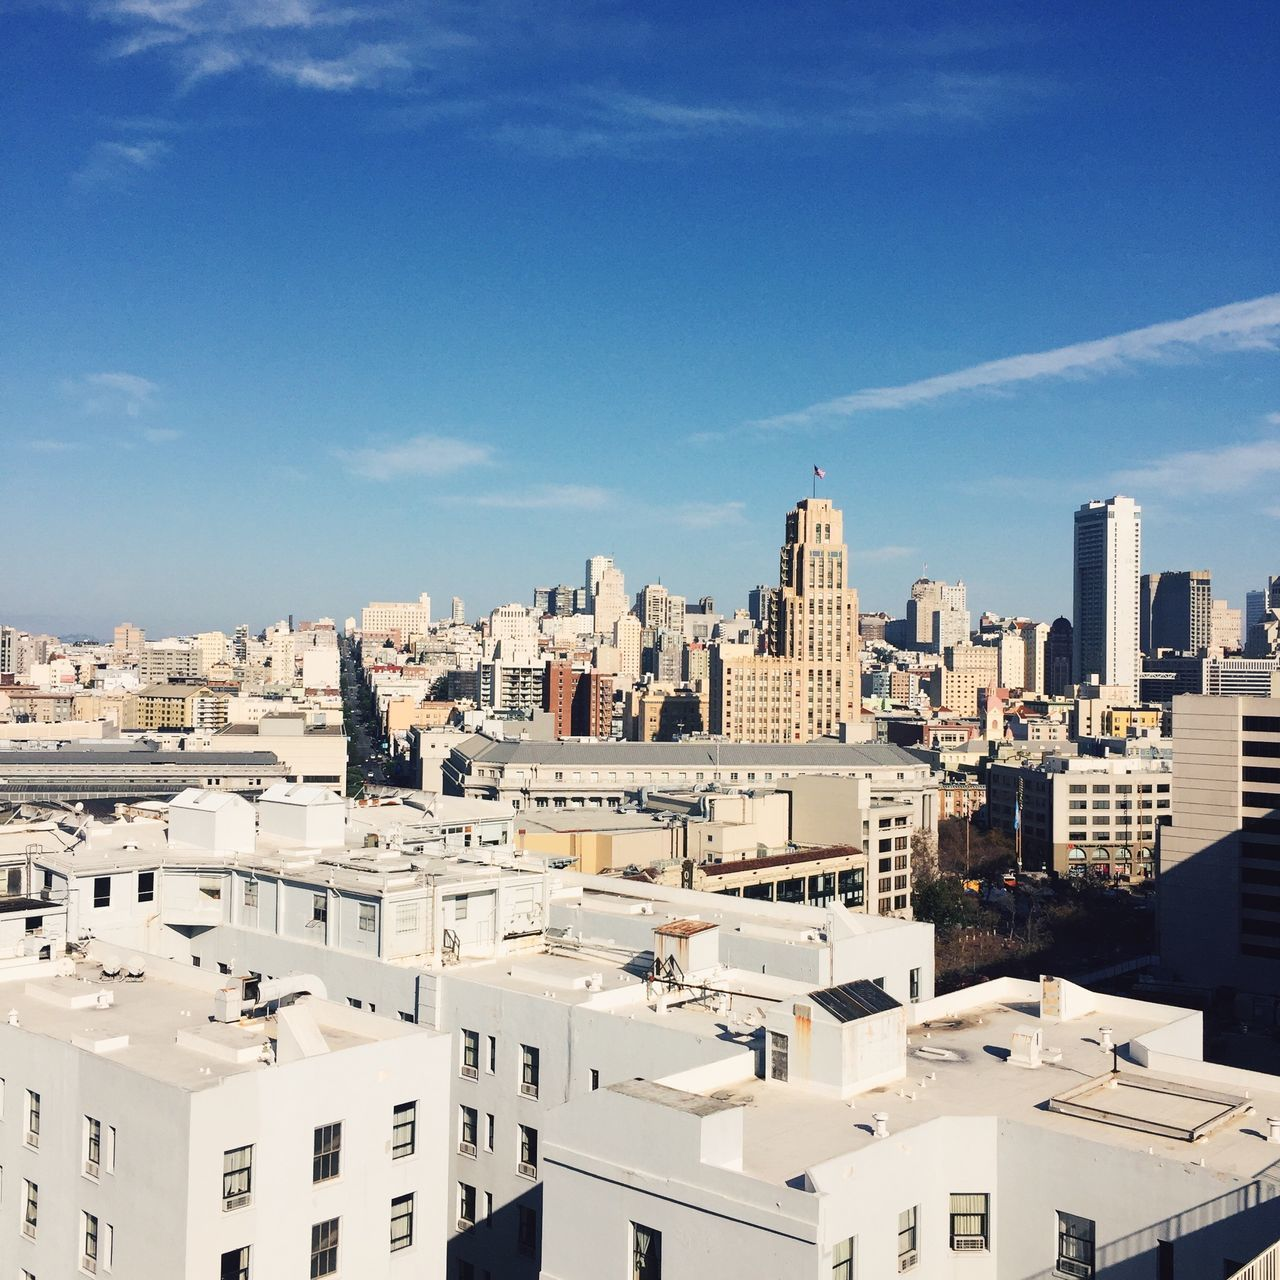 View of San Francisco, USA. Architecture Building Exterior Built Structure California City Cityscape Crowded Day High Angle View IPhone IPhoneography Outdoors Residential Building Residential District San Francisco Sky Skyscraper Square Sunlight Travel Destinations Urban Skyline USA